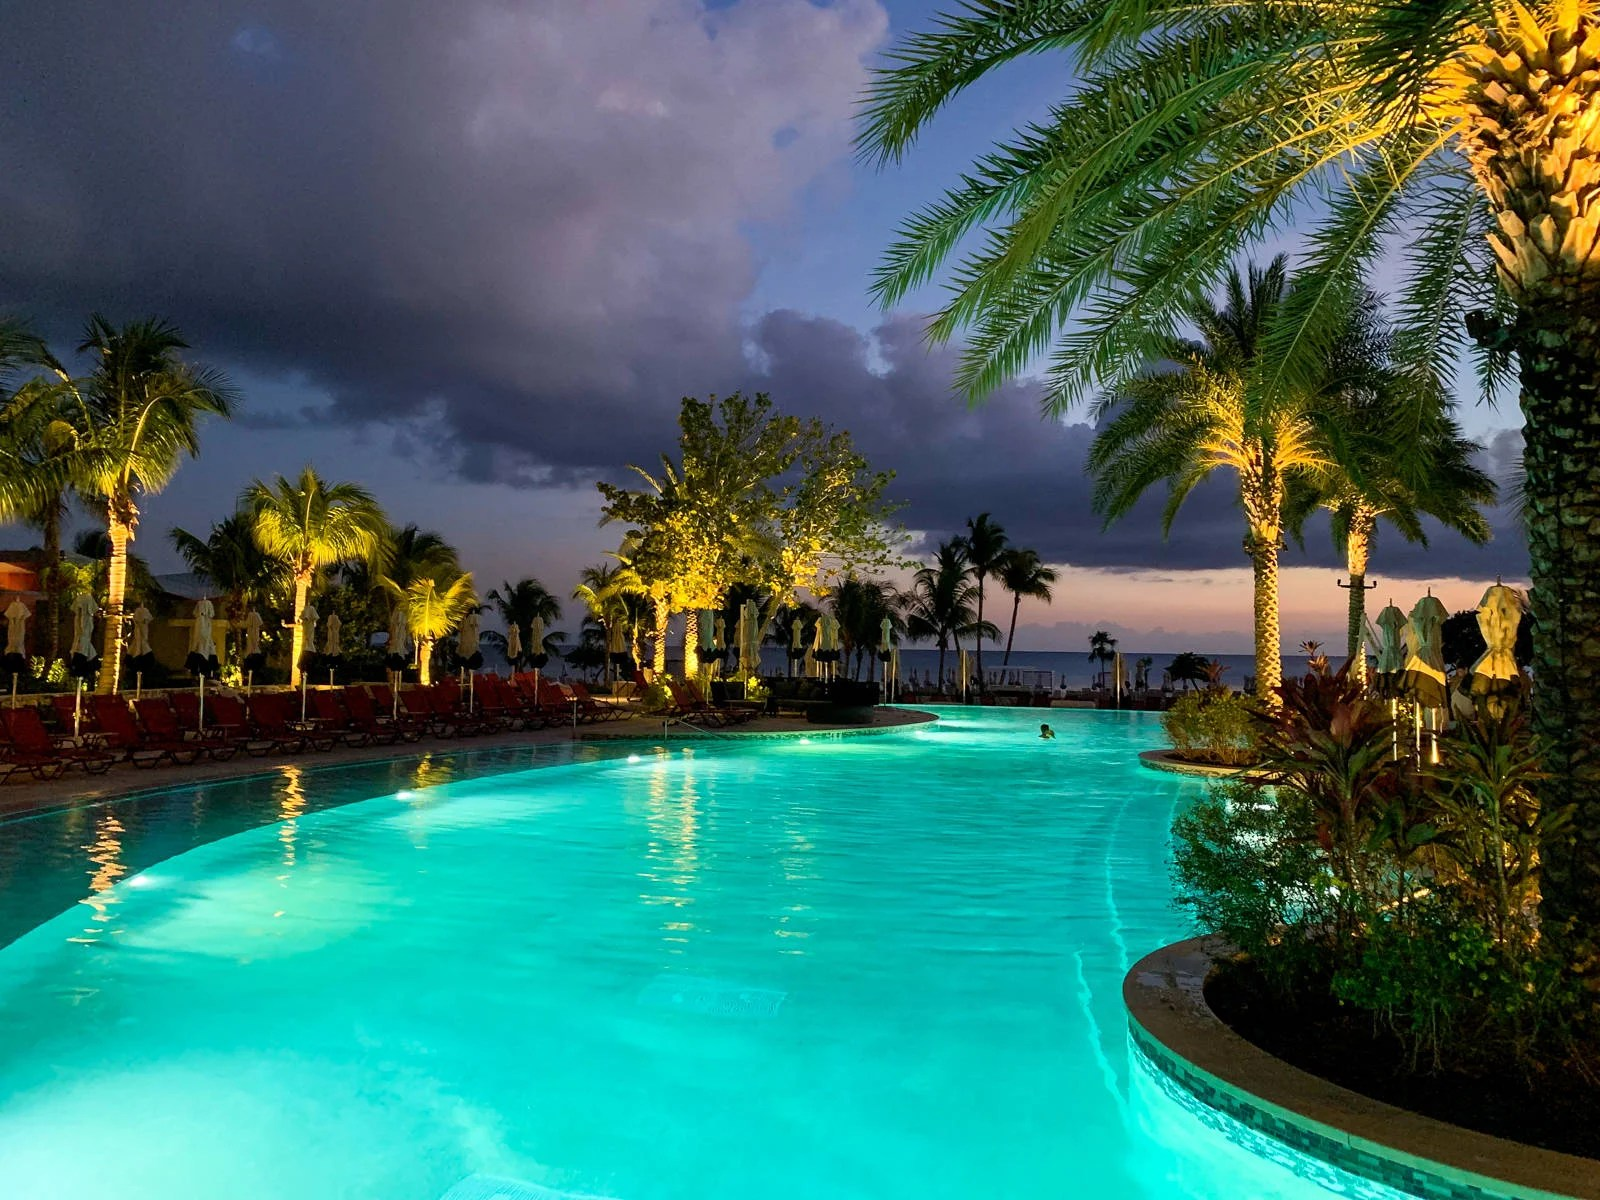 Beachfront Luxury With IHG Points: A Review of the Kimpton Seafire Grand Cayman